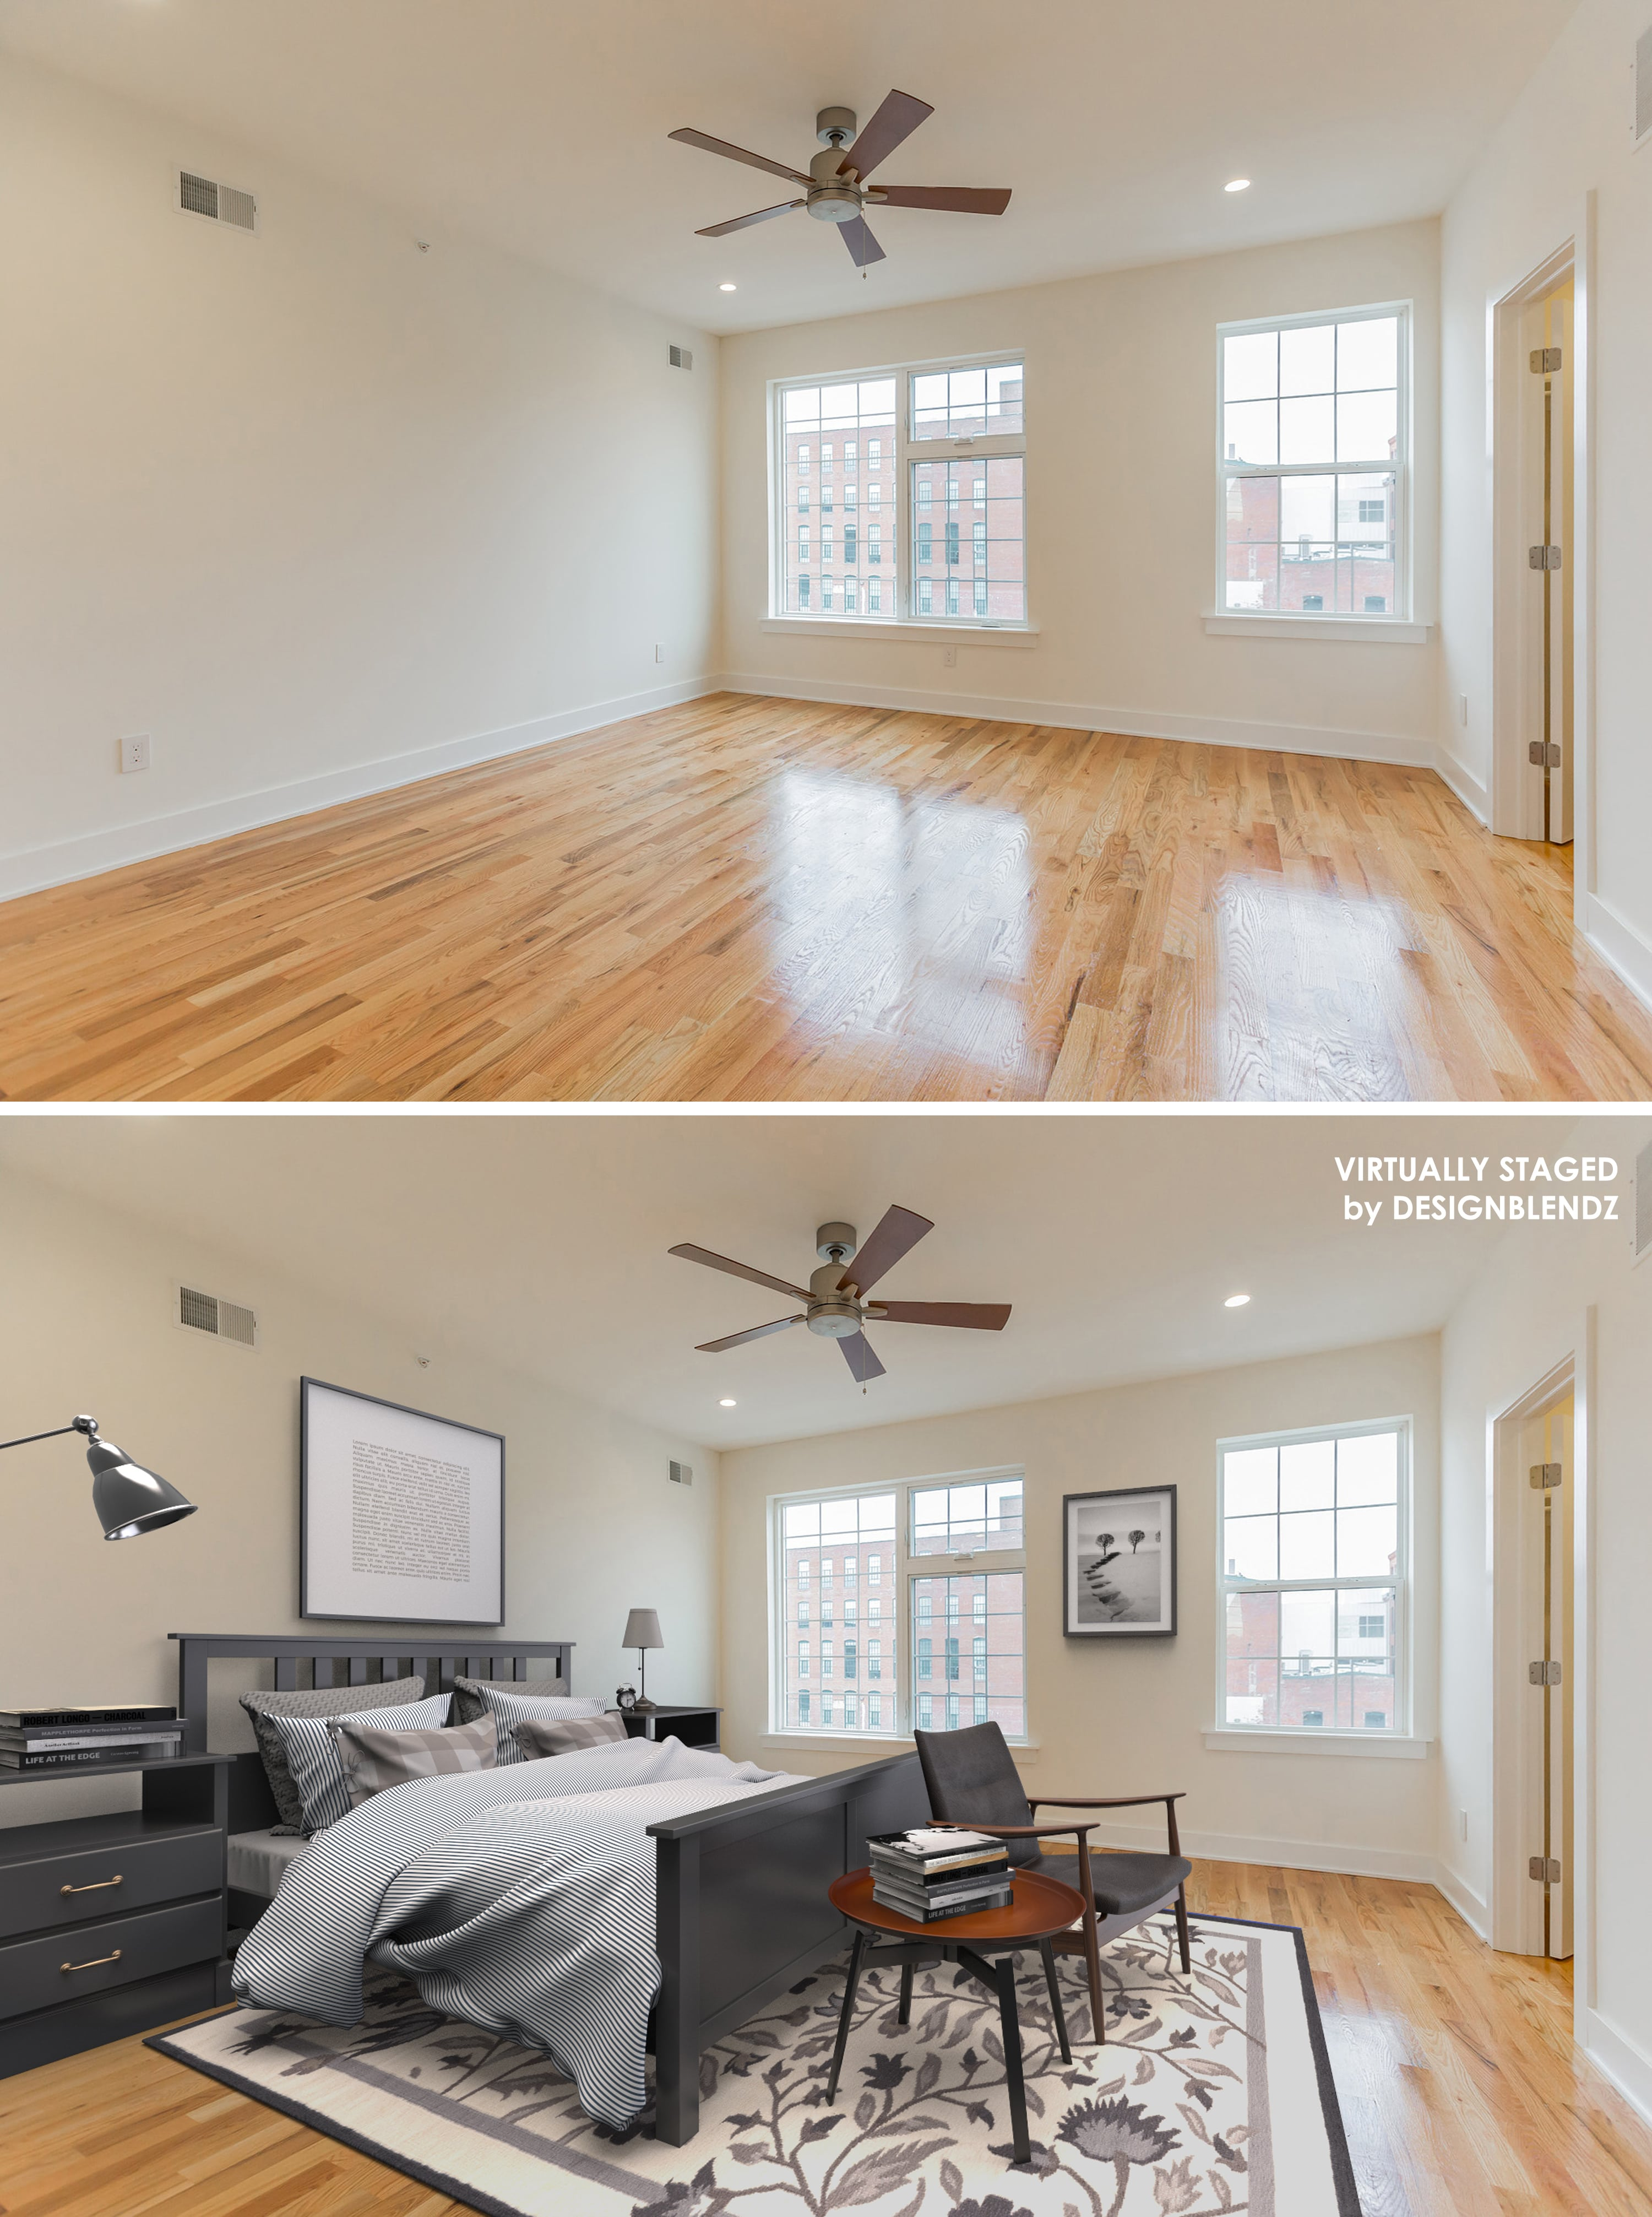 Master bedroom virtual staging example